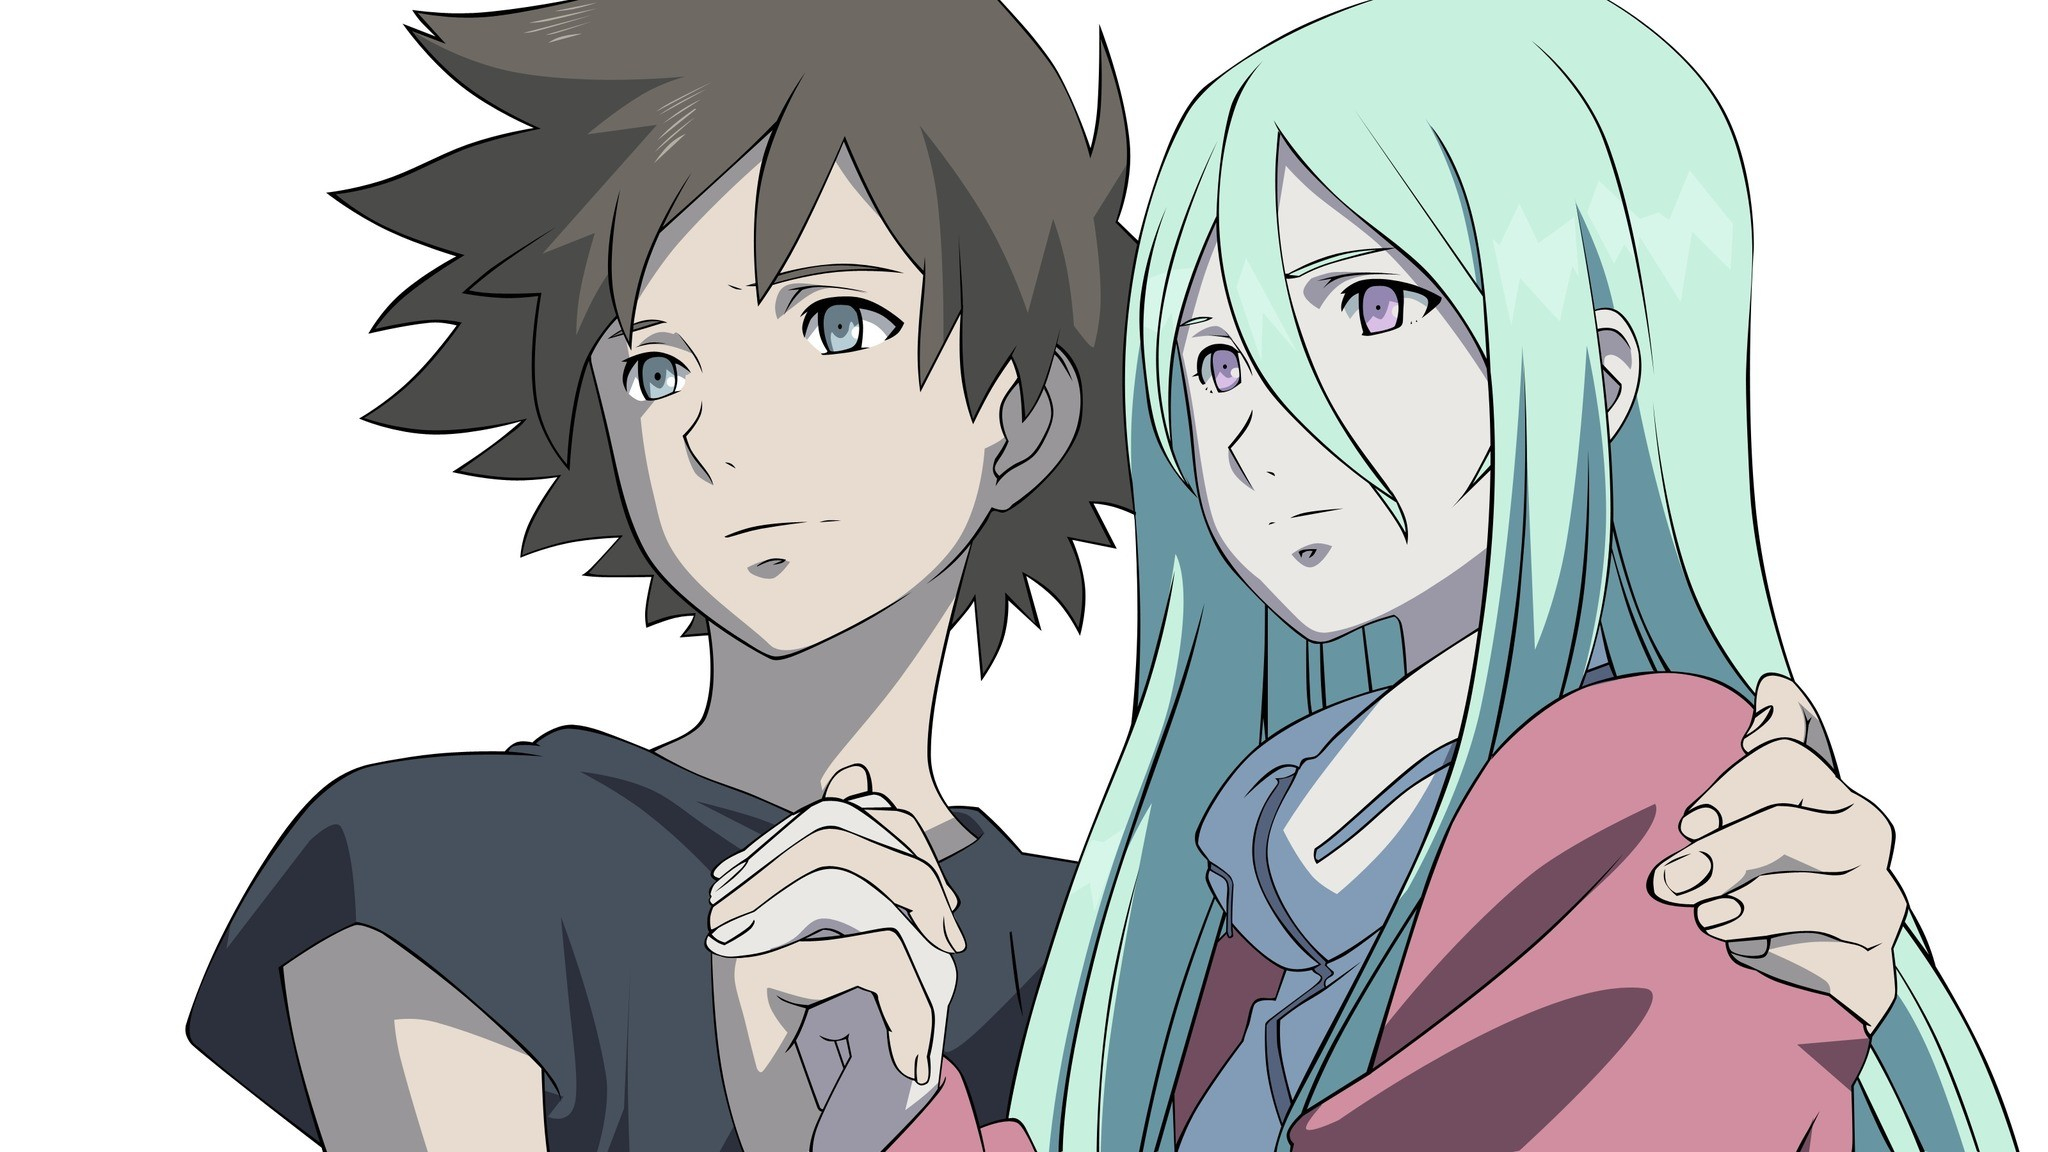 Res: 2048x1152,  Wallpaper eureka seven, boy, girl, touch, smile, look